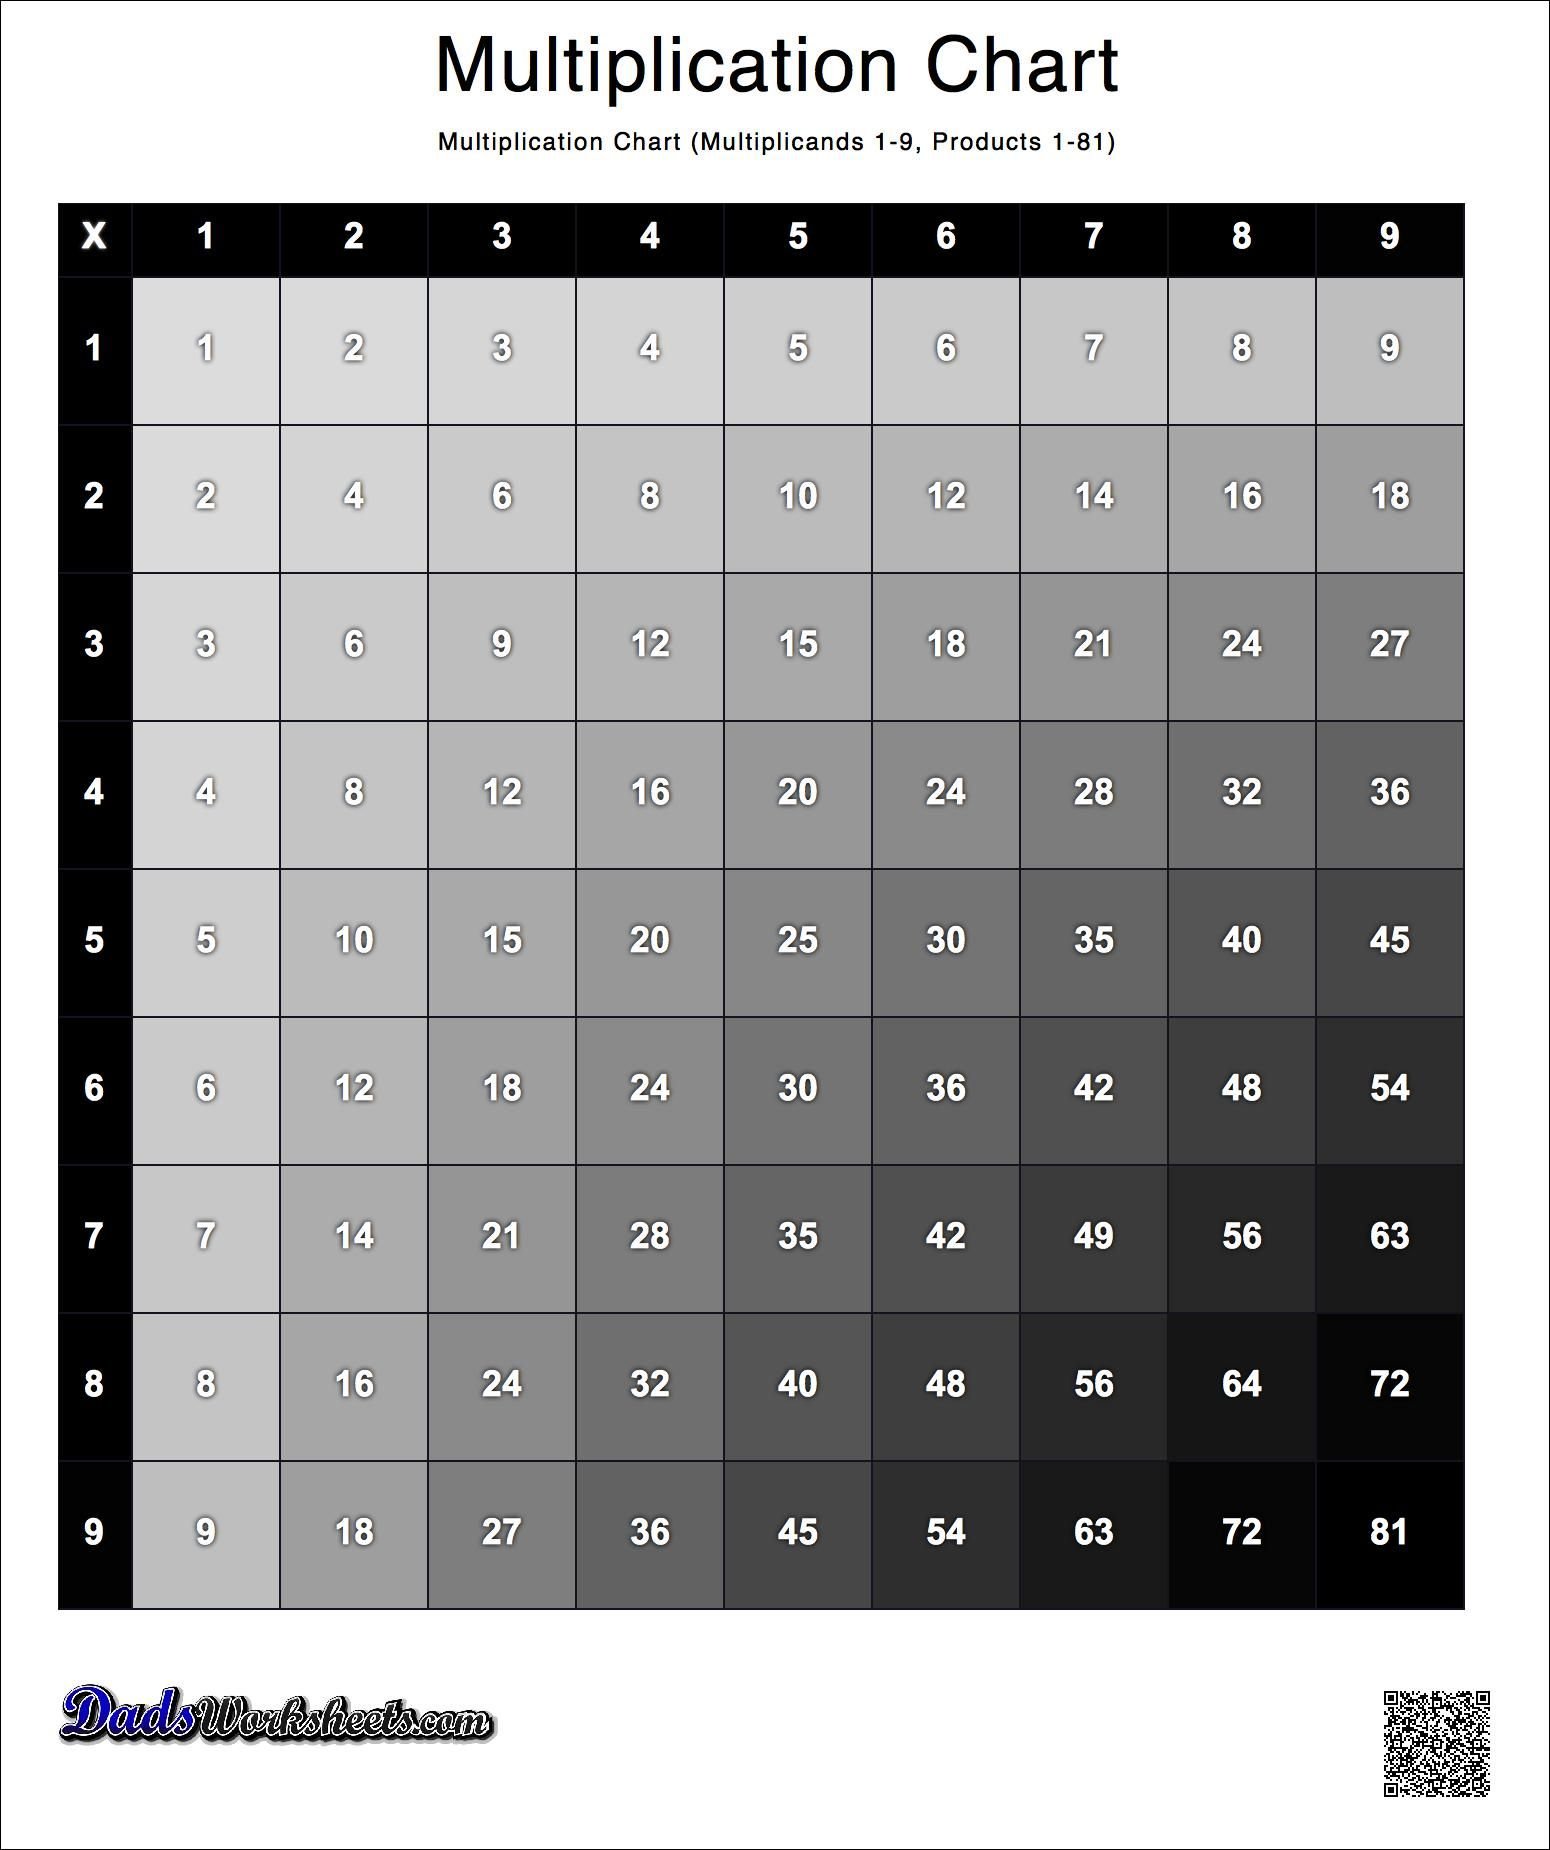 These Multiplication Charts Present The Multiplication Table With